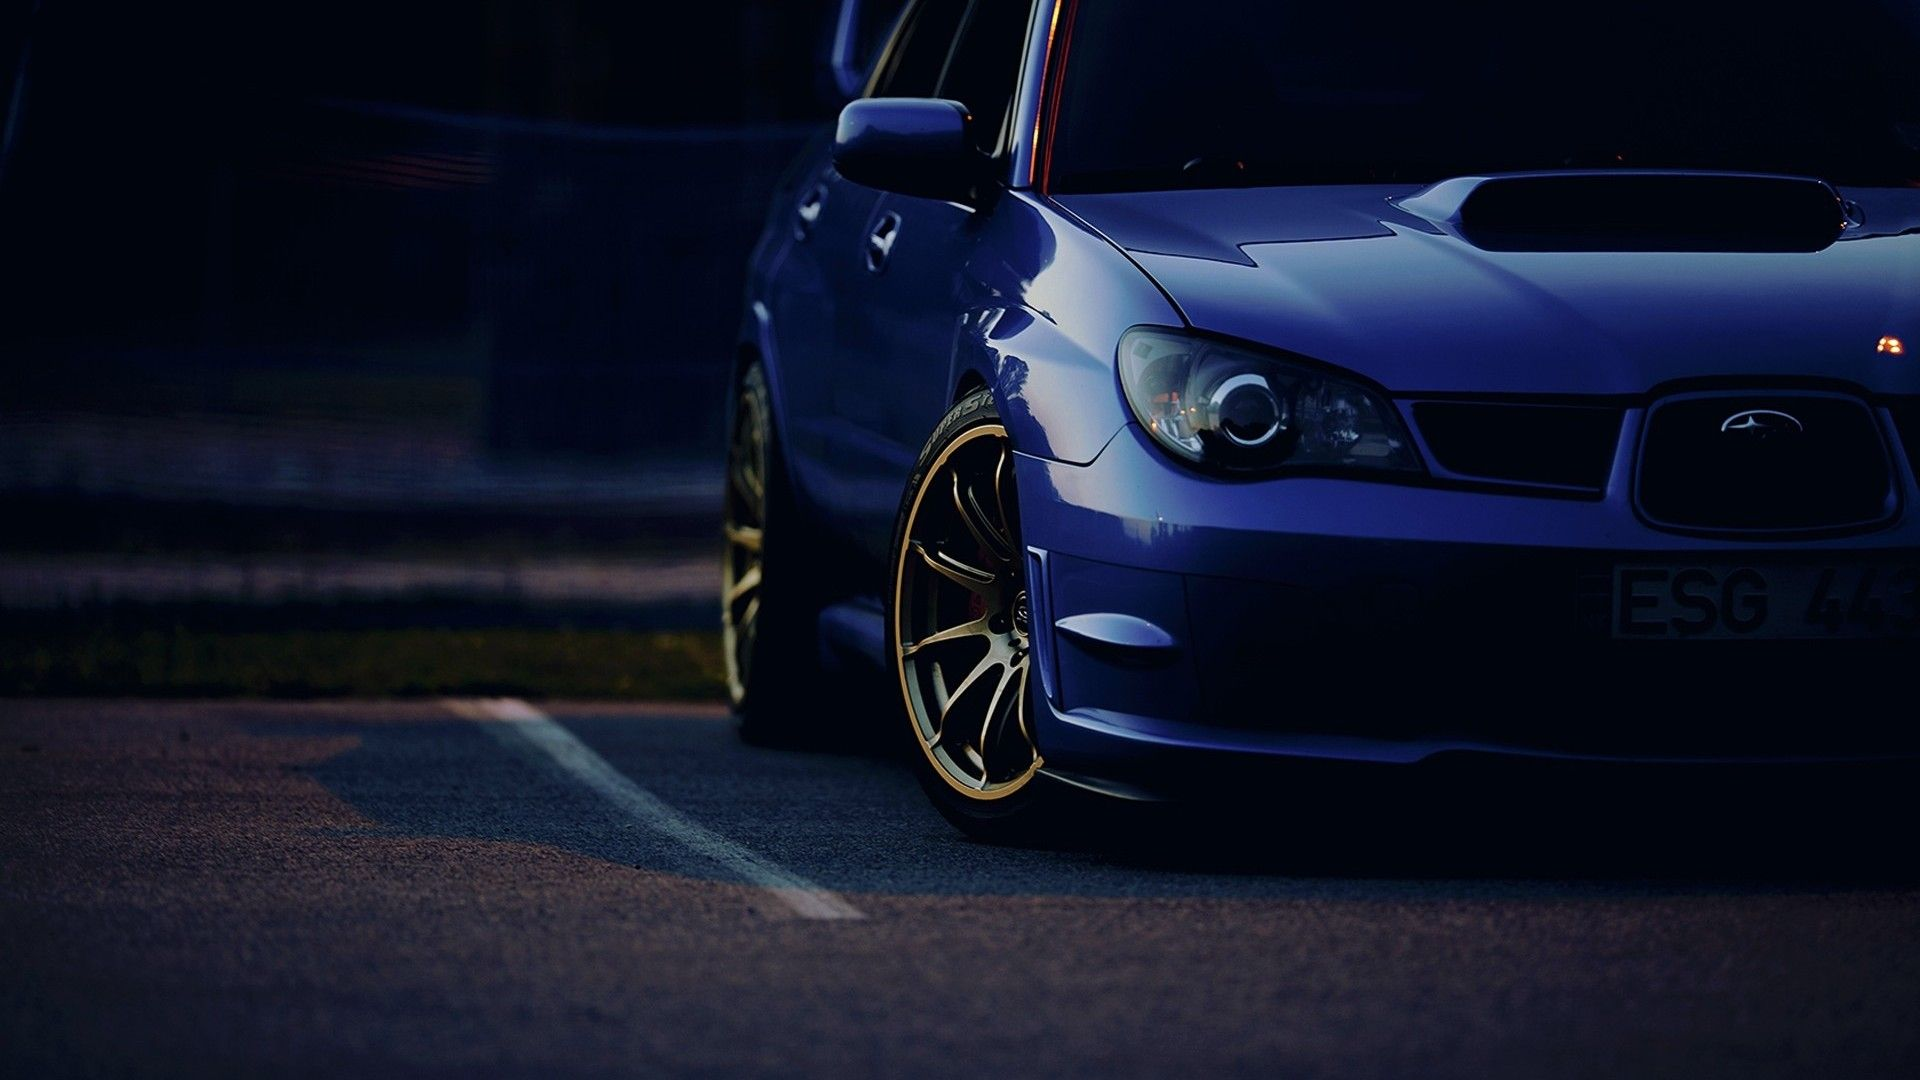 Wrx Sti Wallpaper